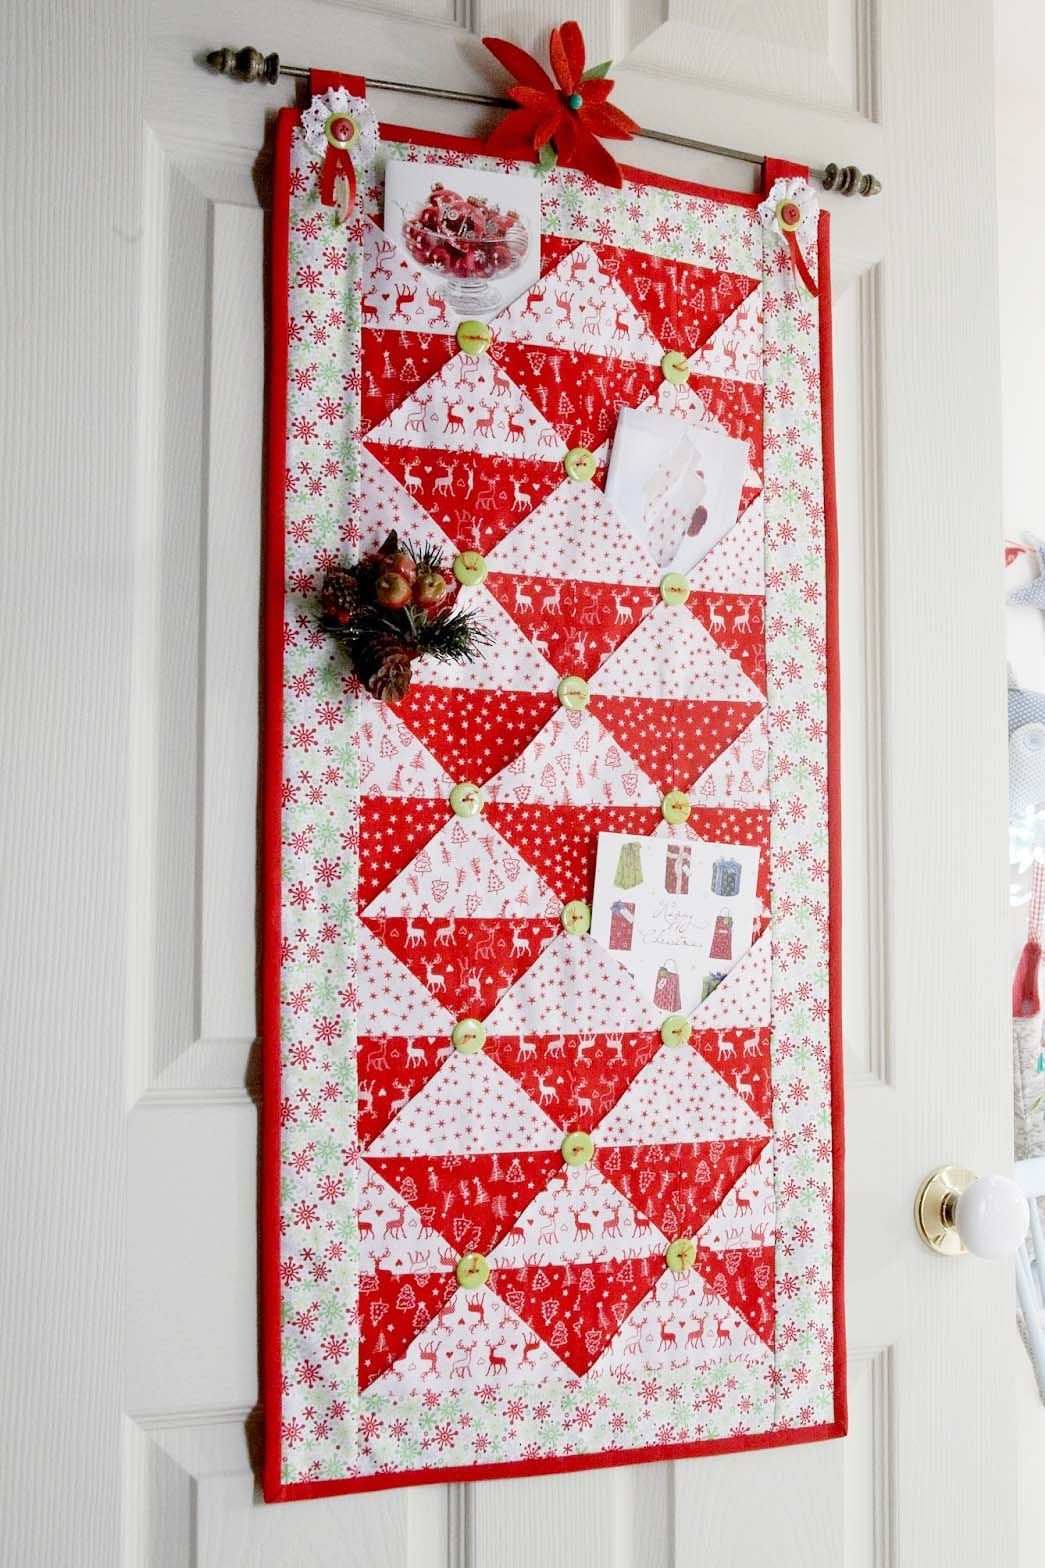 Pinterest Christmas Quilted Wall Hangings 32 Diy Christmas Card Holder Ideas How To Display